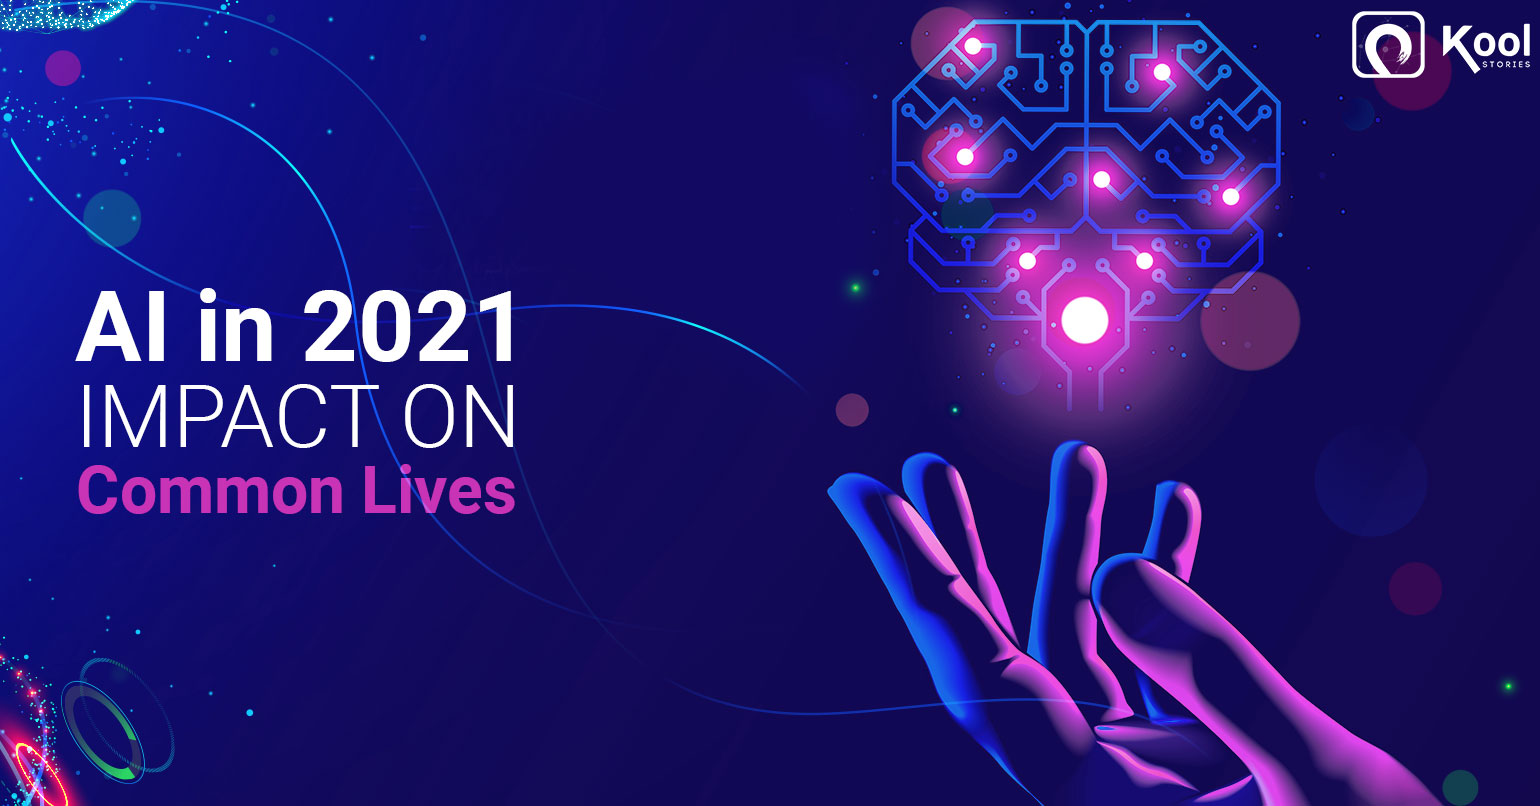 7 Use Cases of AI in 2021 That Will Impact Common Lives